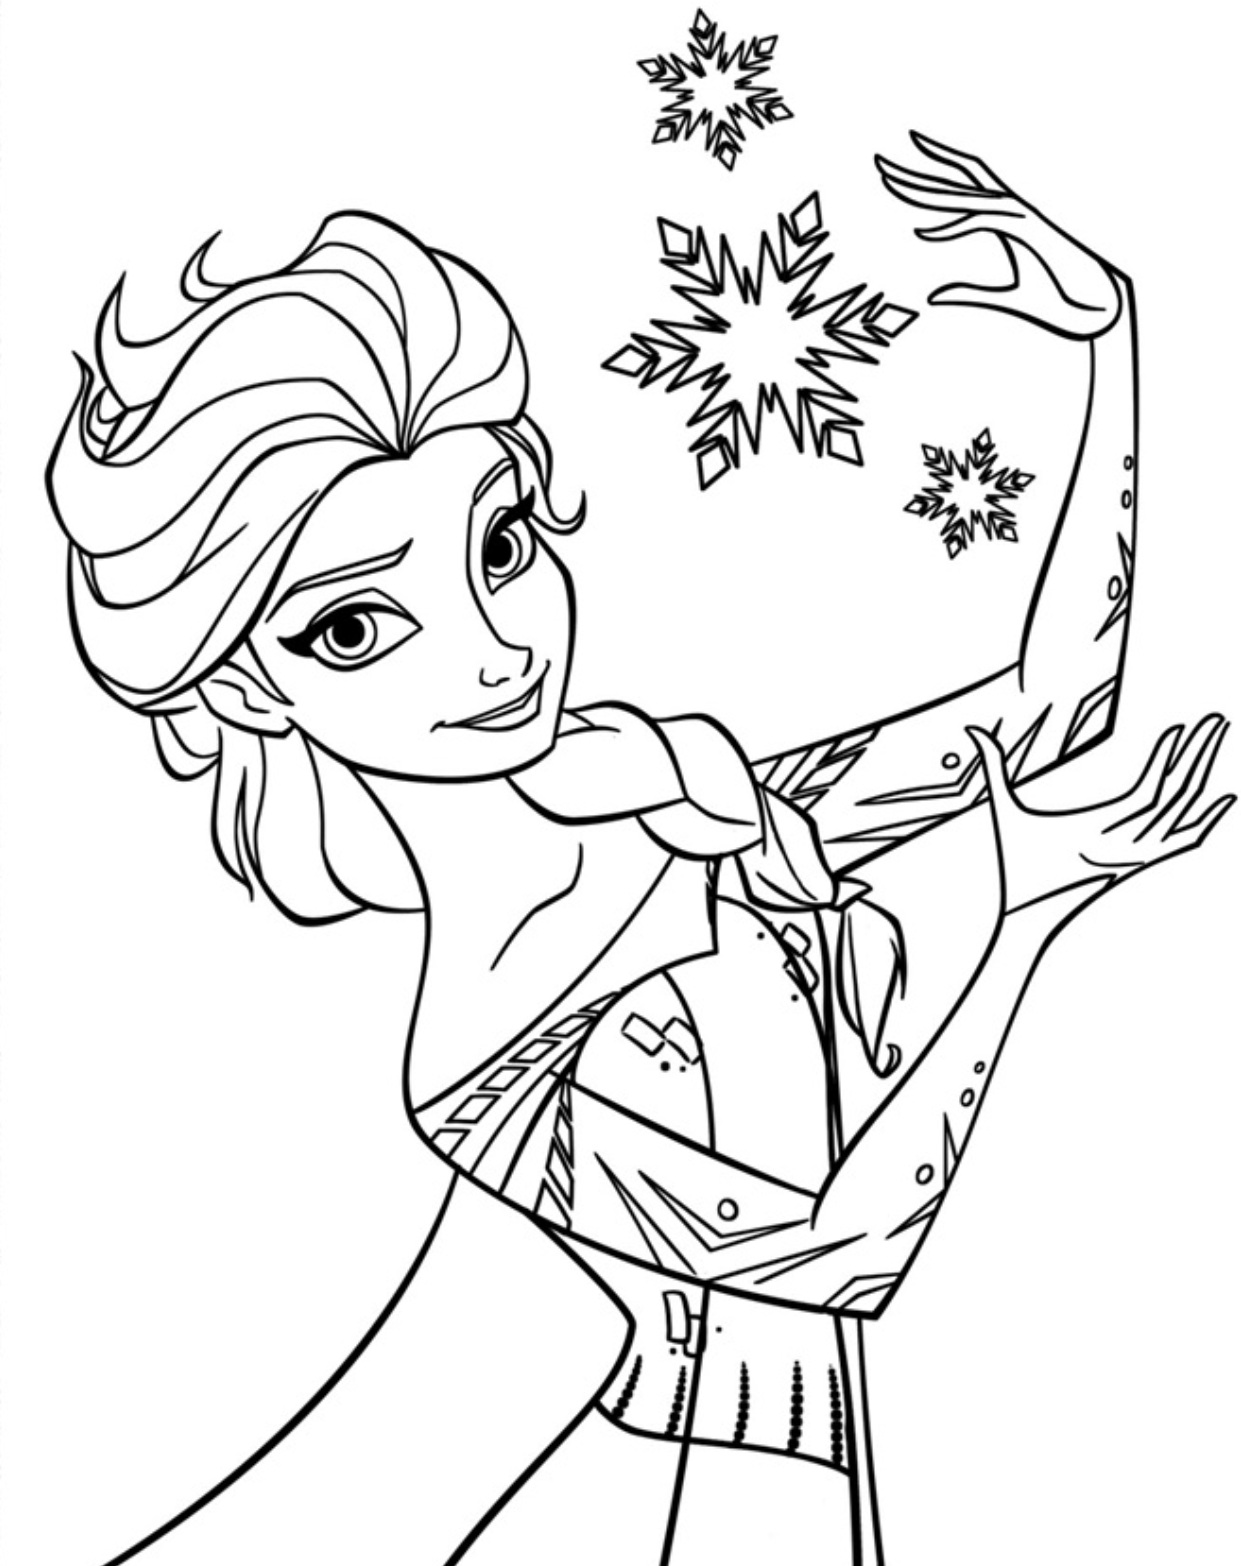 coloring sheet things to color free printable elsa coloring pages for kids best things coloring sheet to color